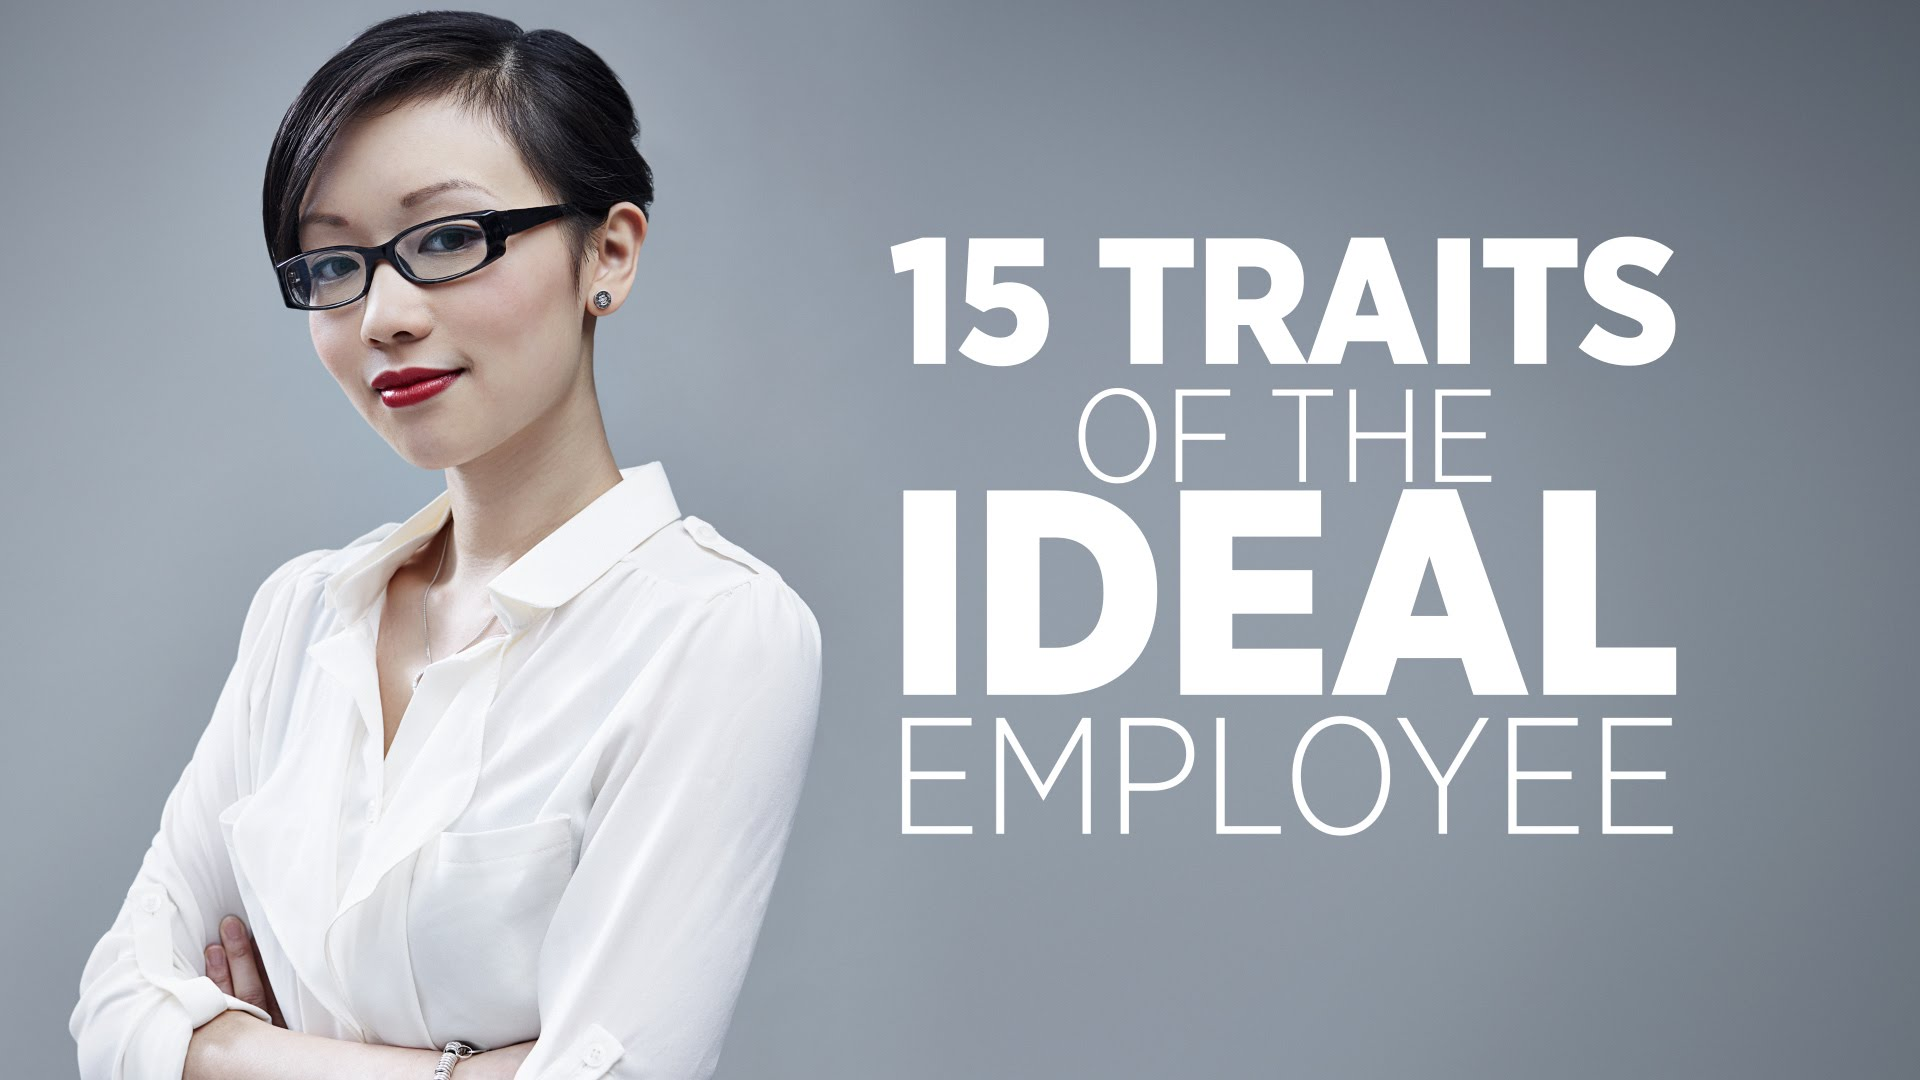 hcrc staffing blog 15 traits of the ideal employee